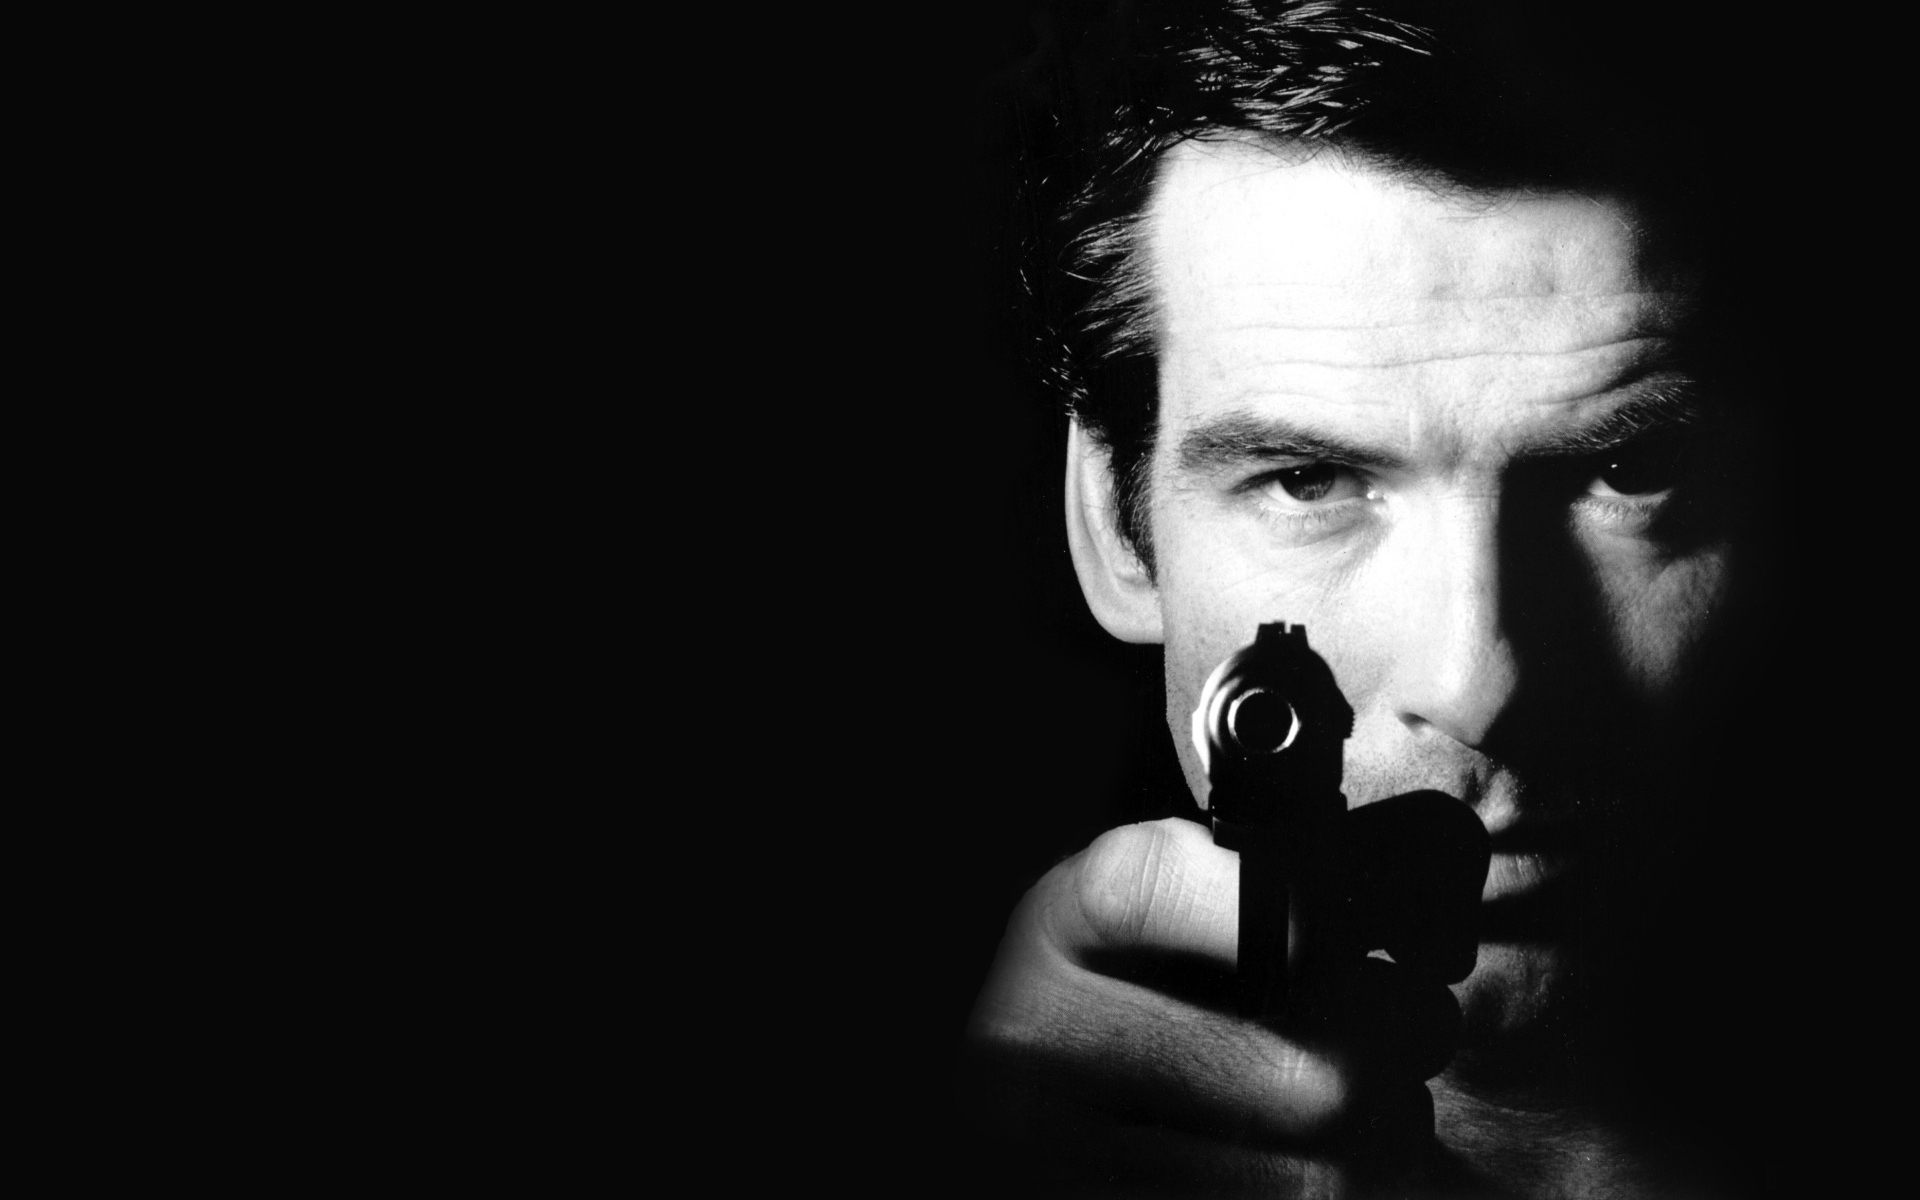 Brosnan pistol 007 James Bond weapons gunspeople men actor wallpaper 1920x1200